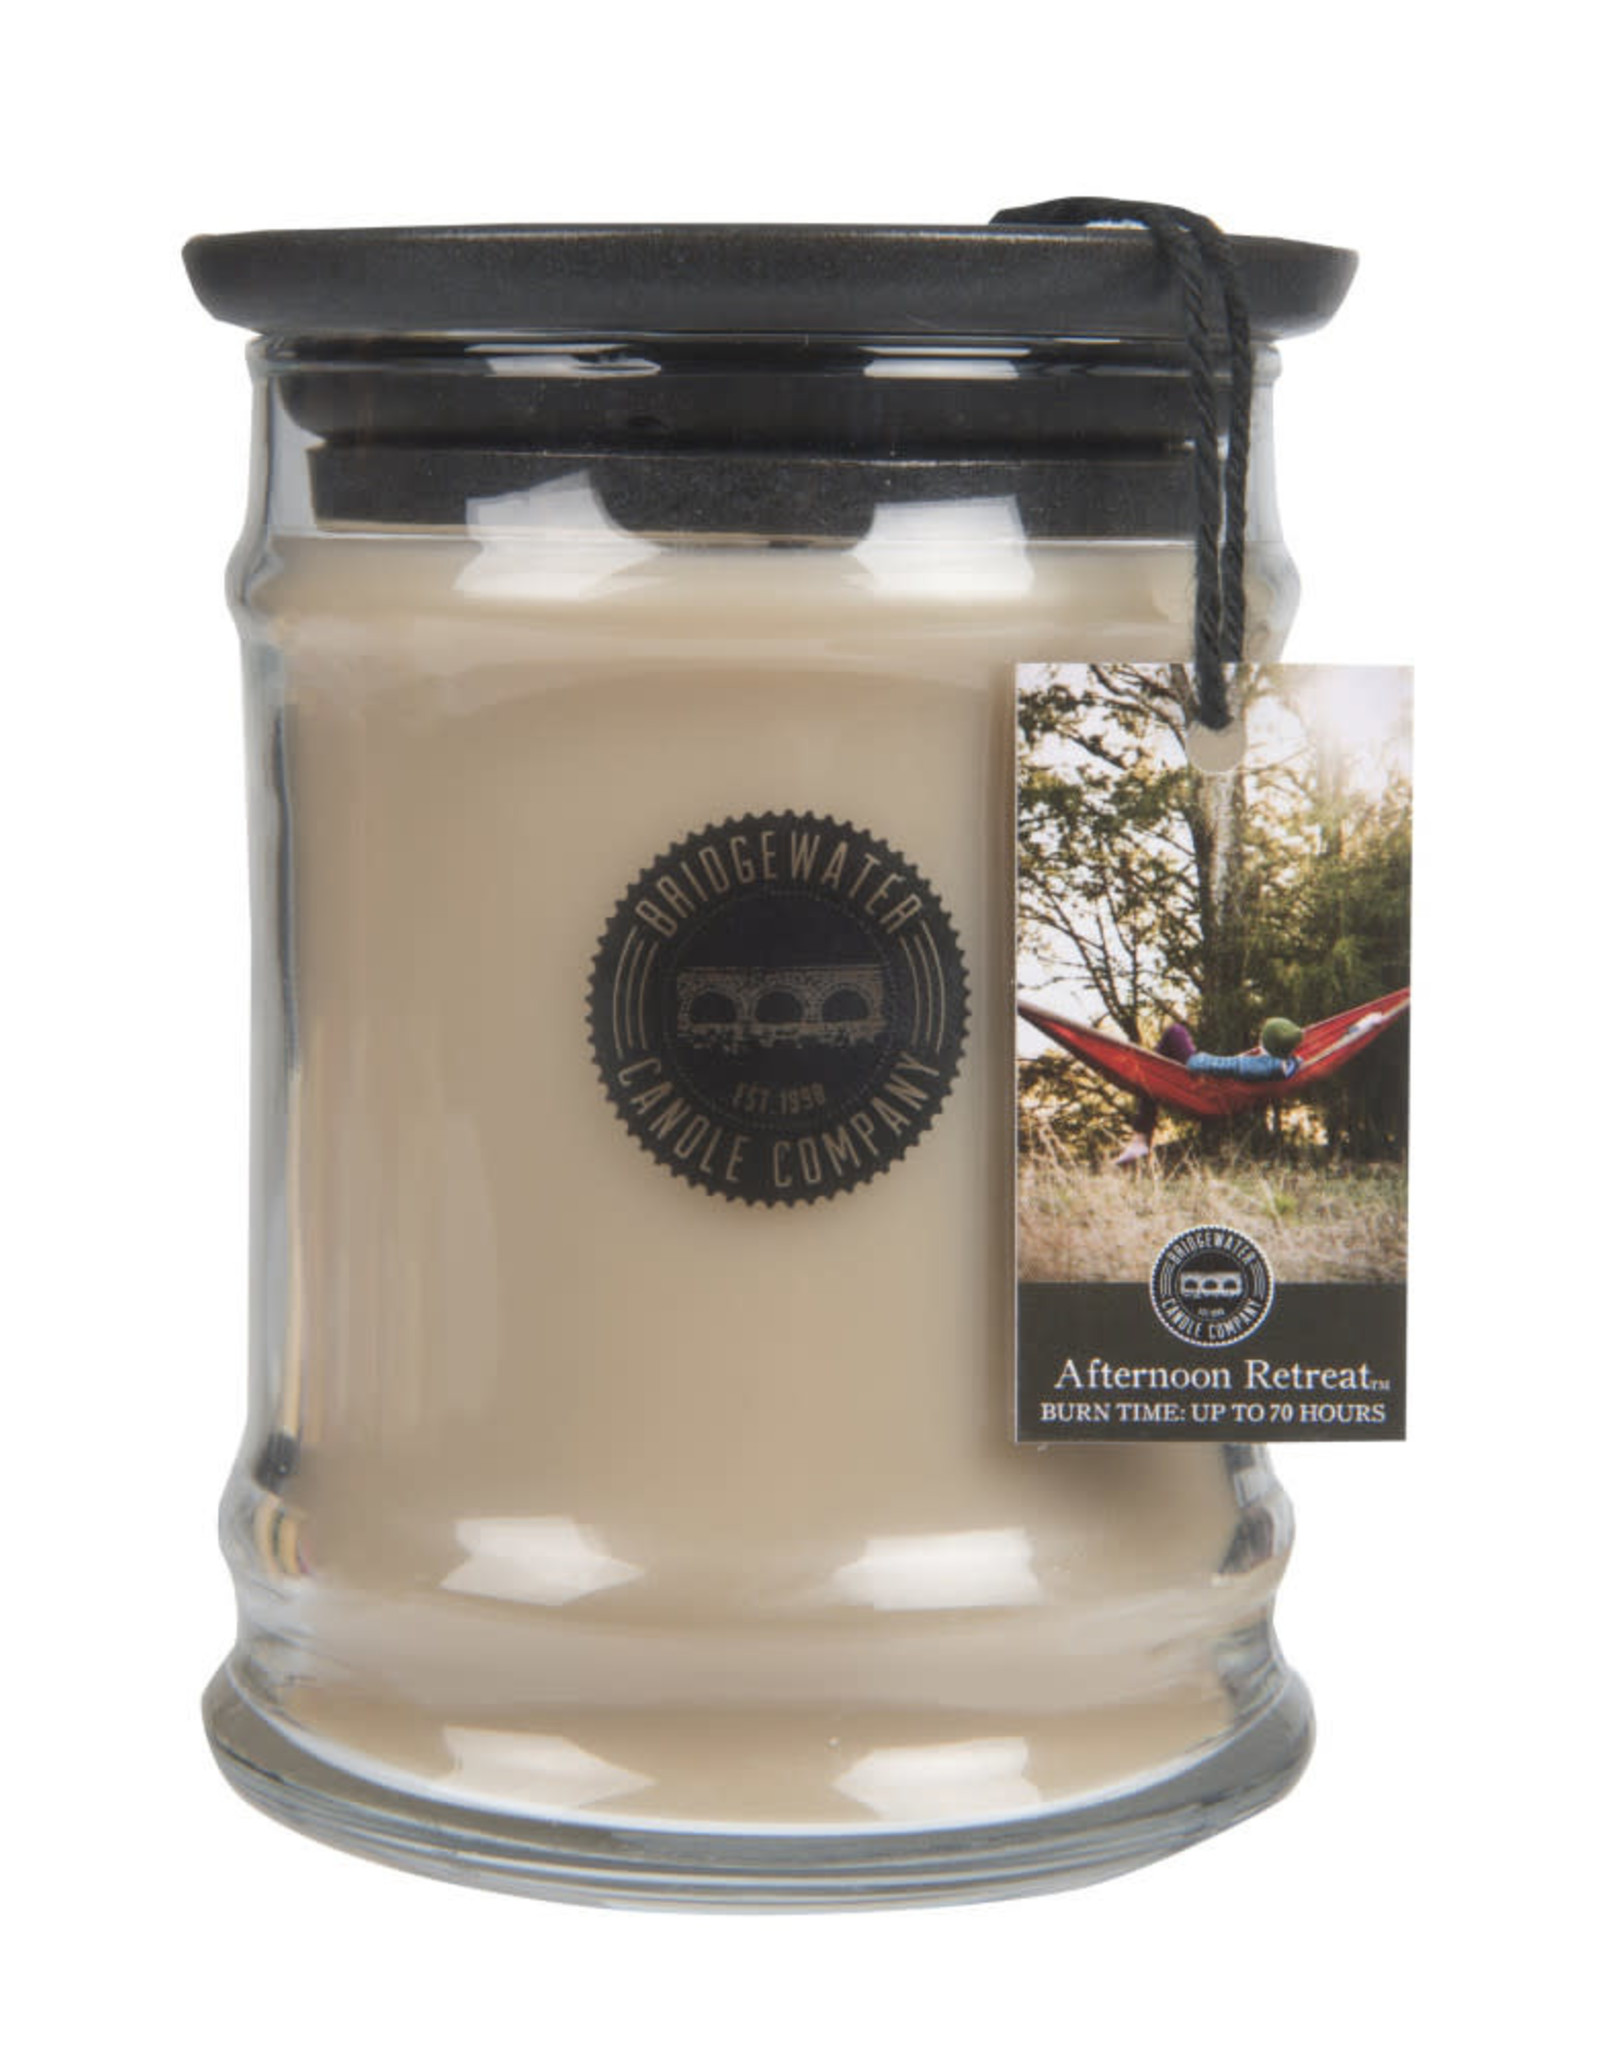 Bridgewater Candles Afternoon Retreat Candle